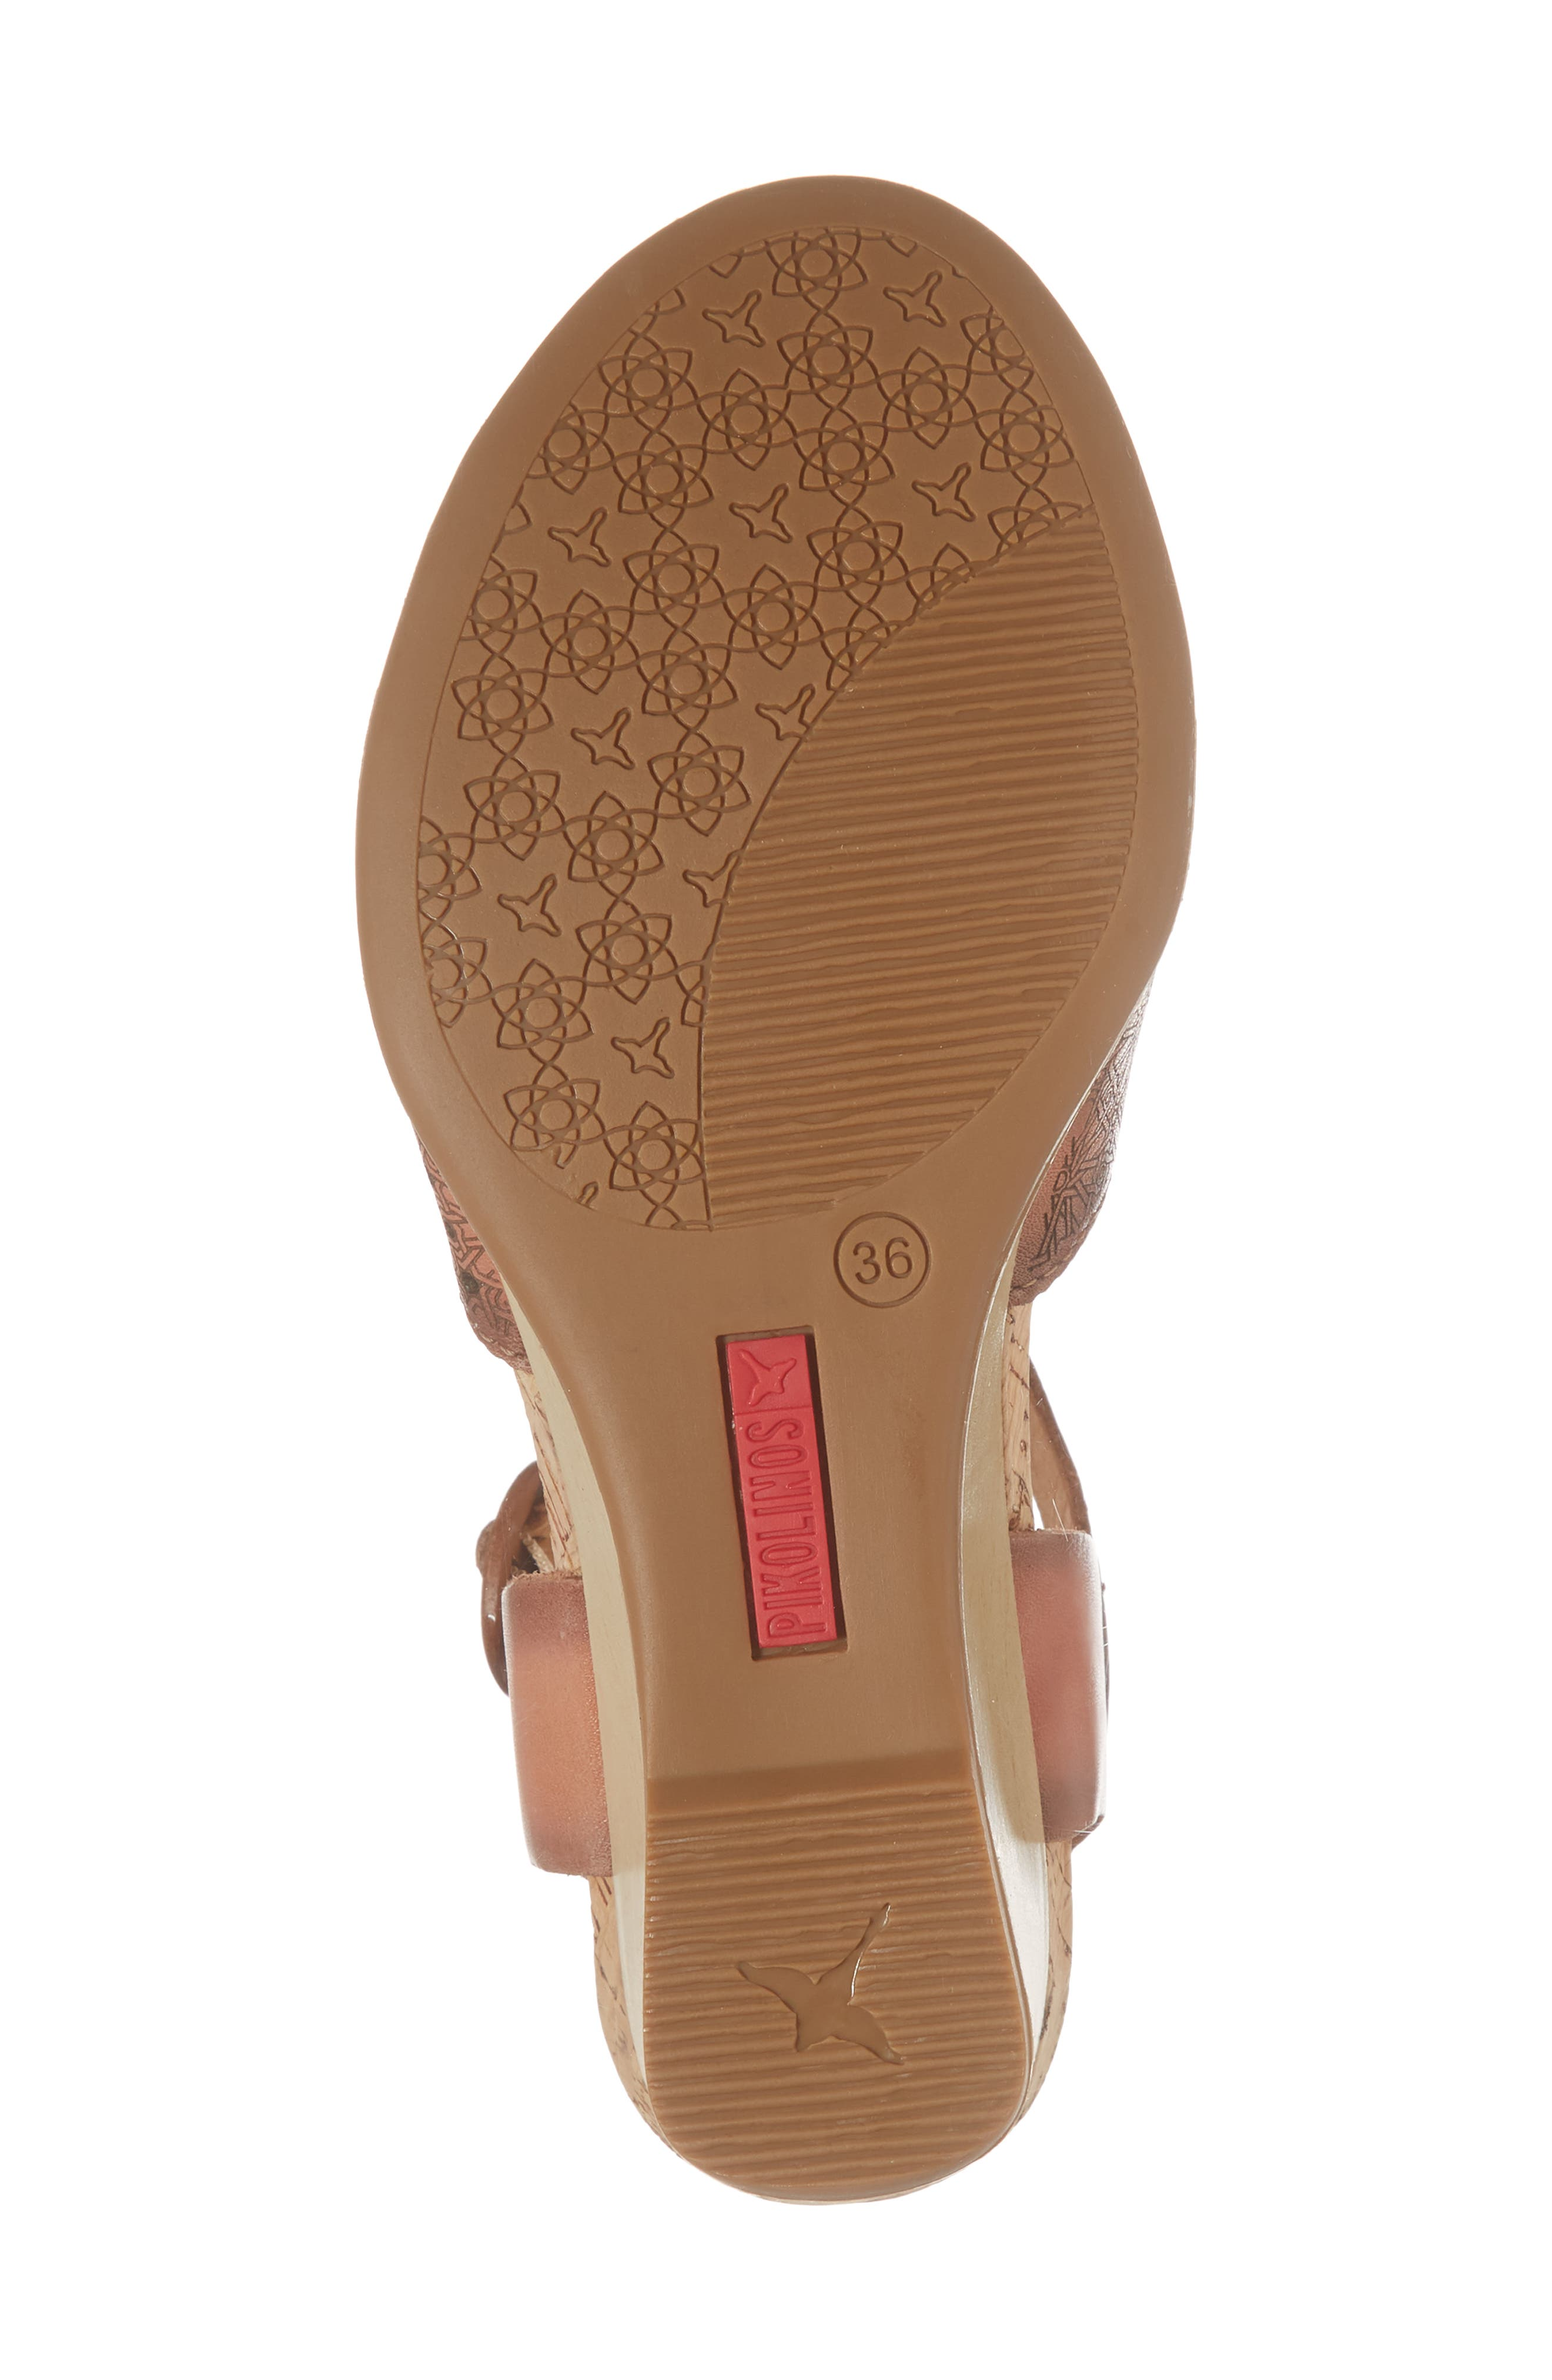 Vigo Wedge Sandal,                             Alternate thumbnail 6, color,                             FLAMINGO LEATHER